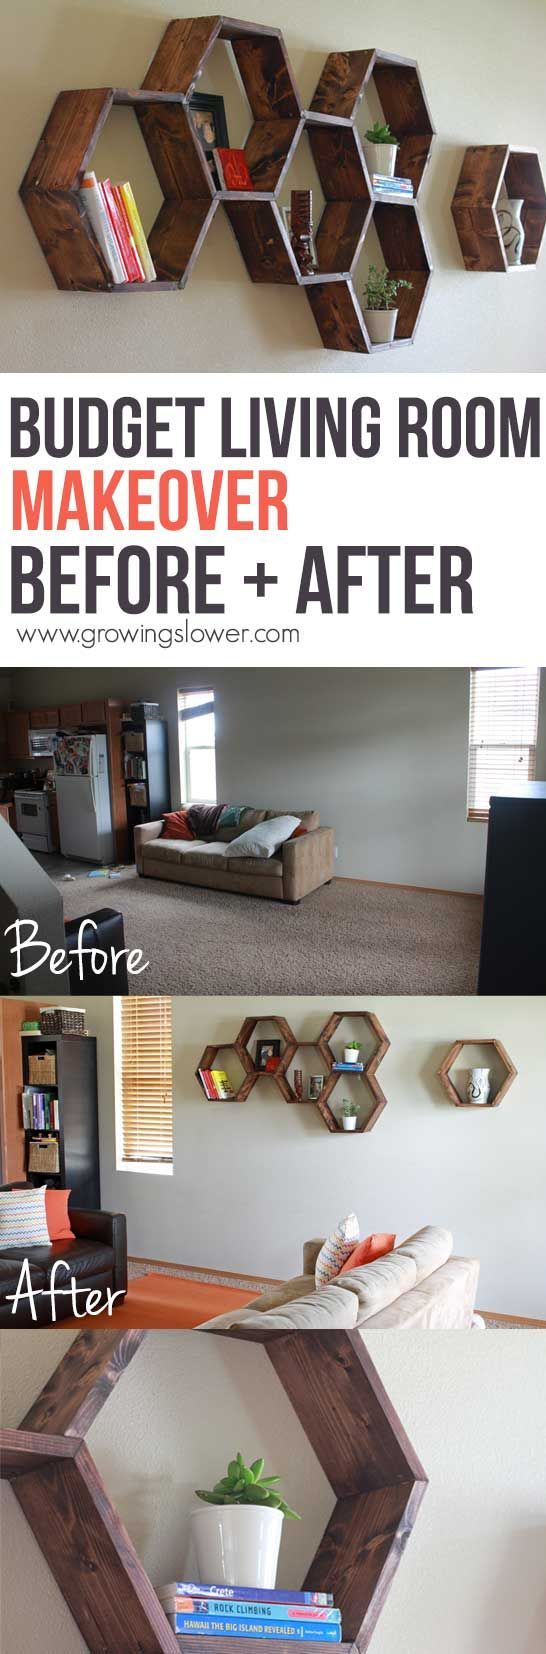 living room furniture budget%0A How to do a living room makeover on any budget  seriously